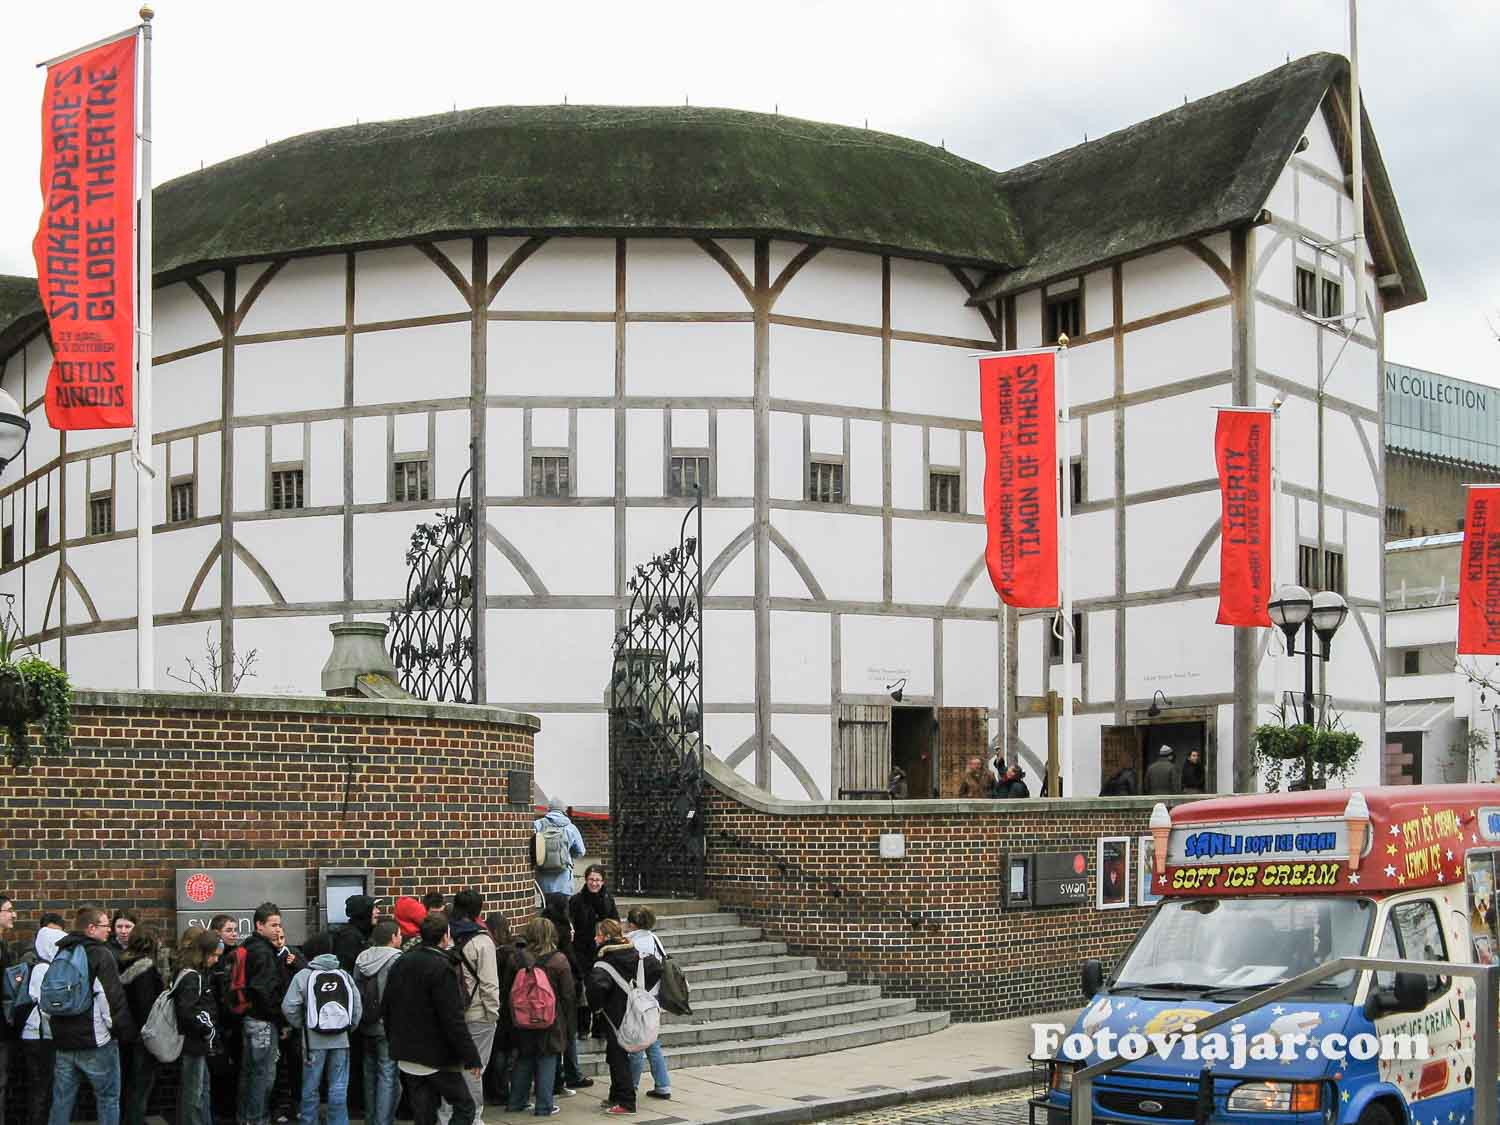 londres 2 dias shakespeare